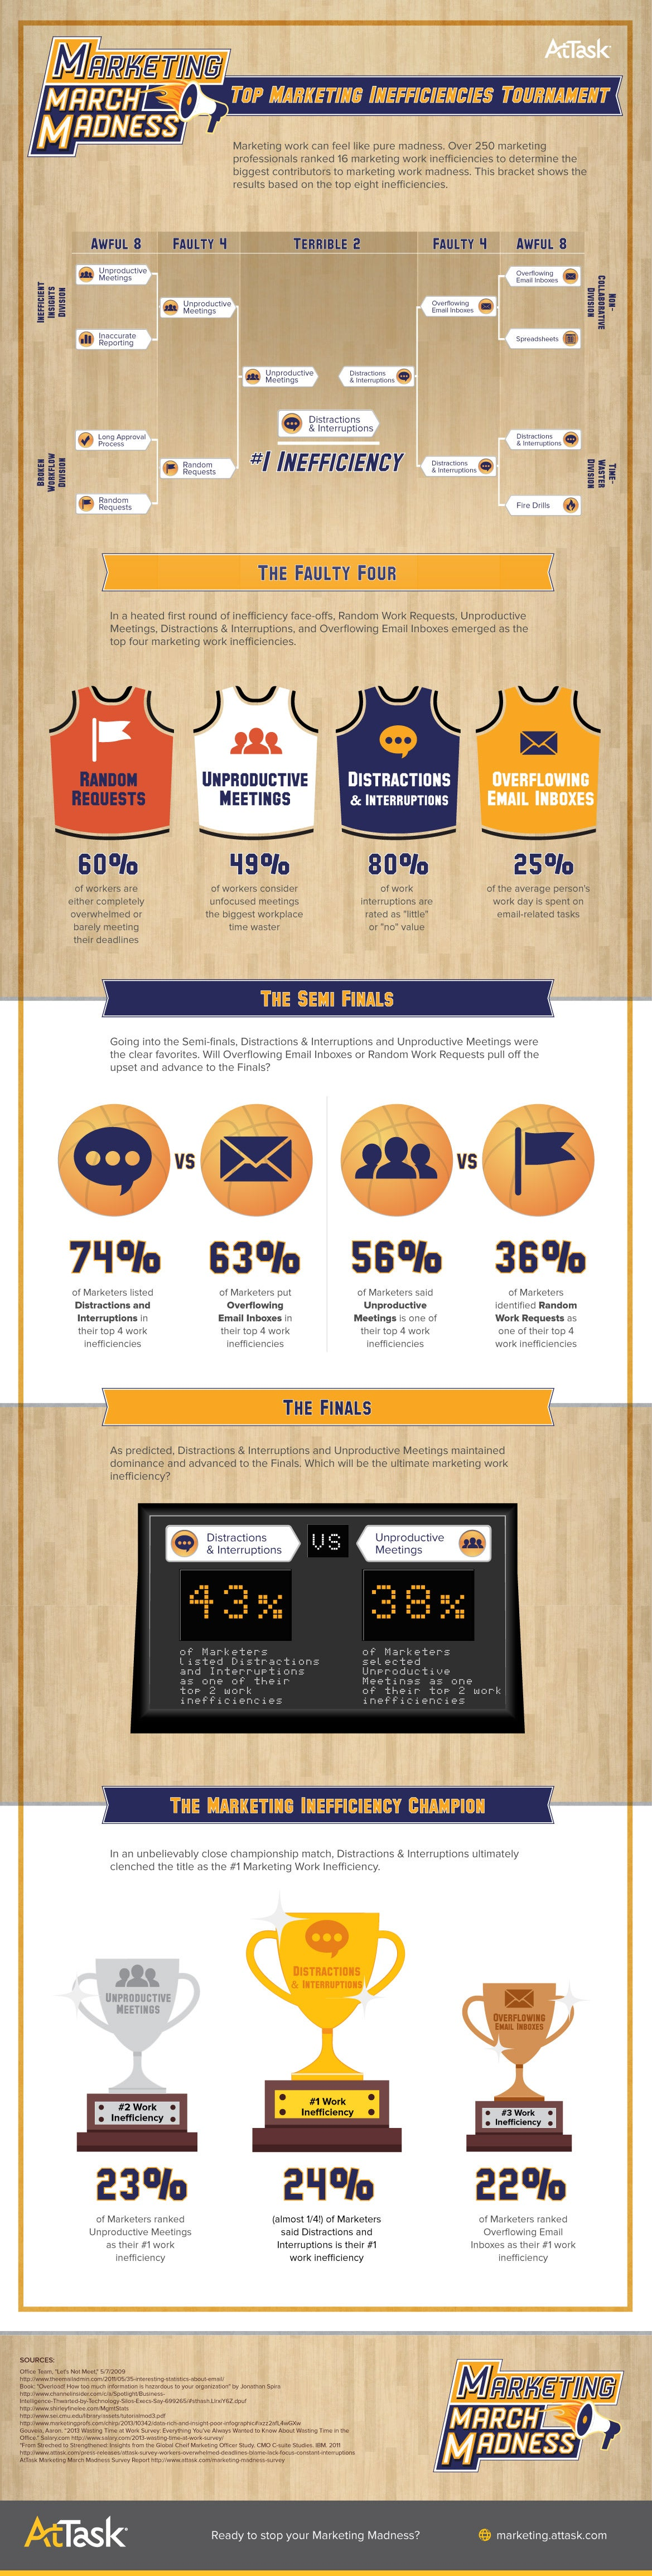 Why You Can't Get Anything Done Explained in a March Madness Bracket (Infographic)